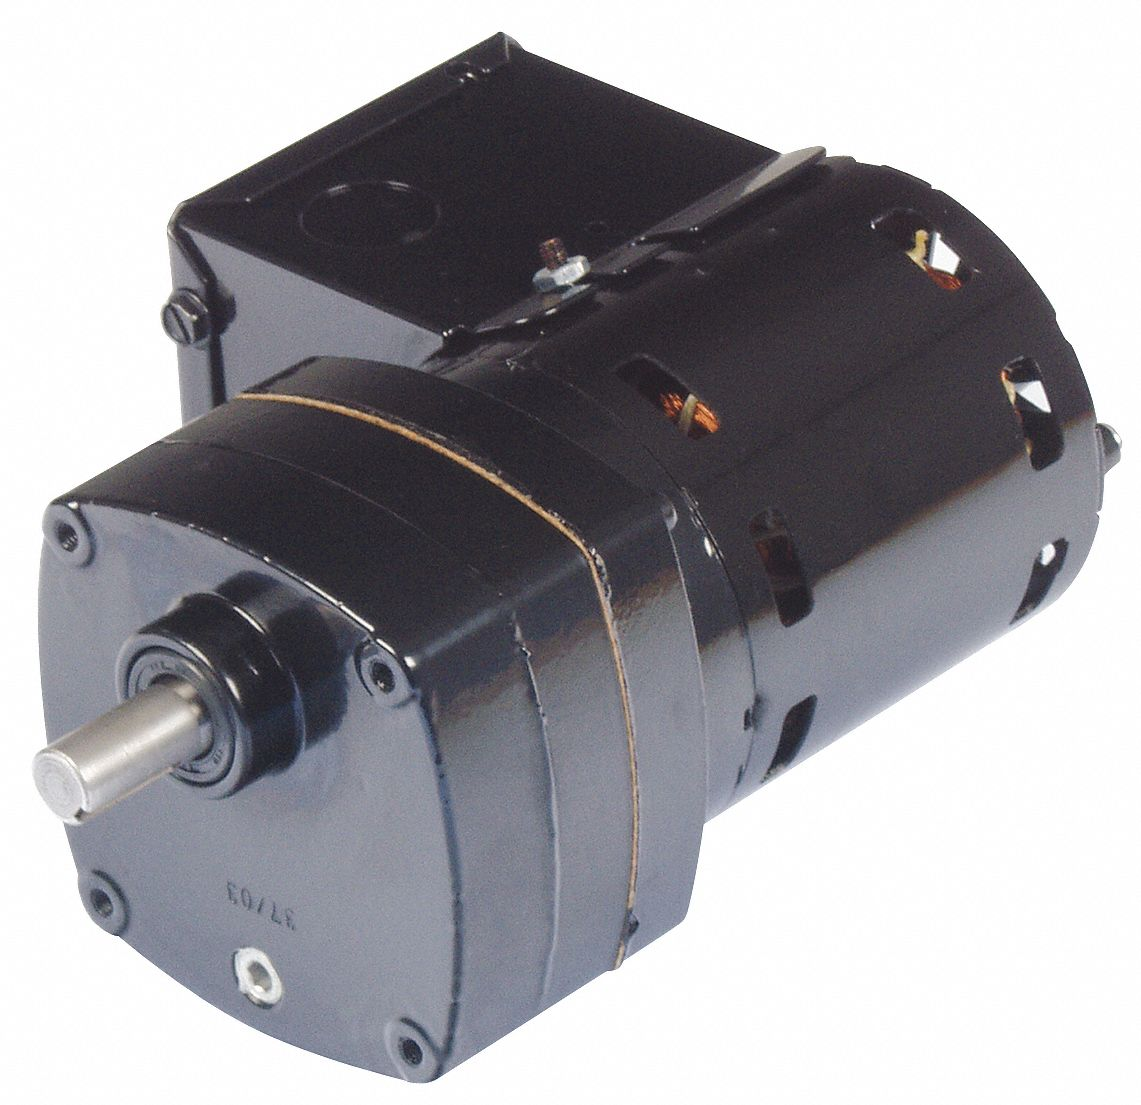 hight resolution of dayton ac gearmotor 115 nameplate rpm 32 max torque 96 0 in lb enclosure open 6z078 6z078 grainger